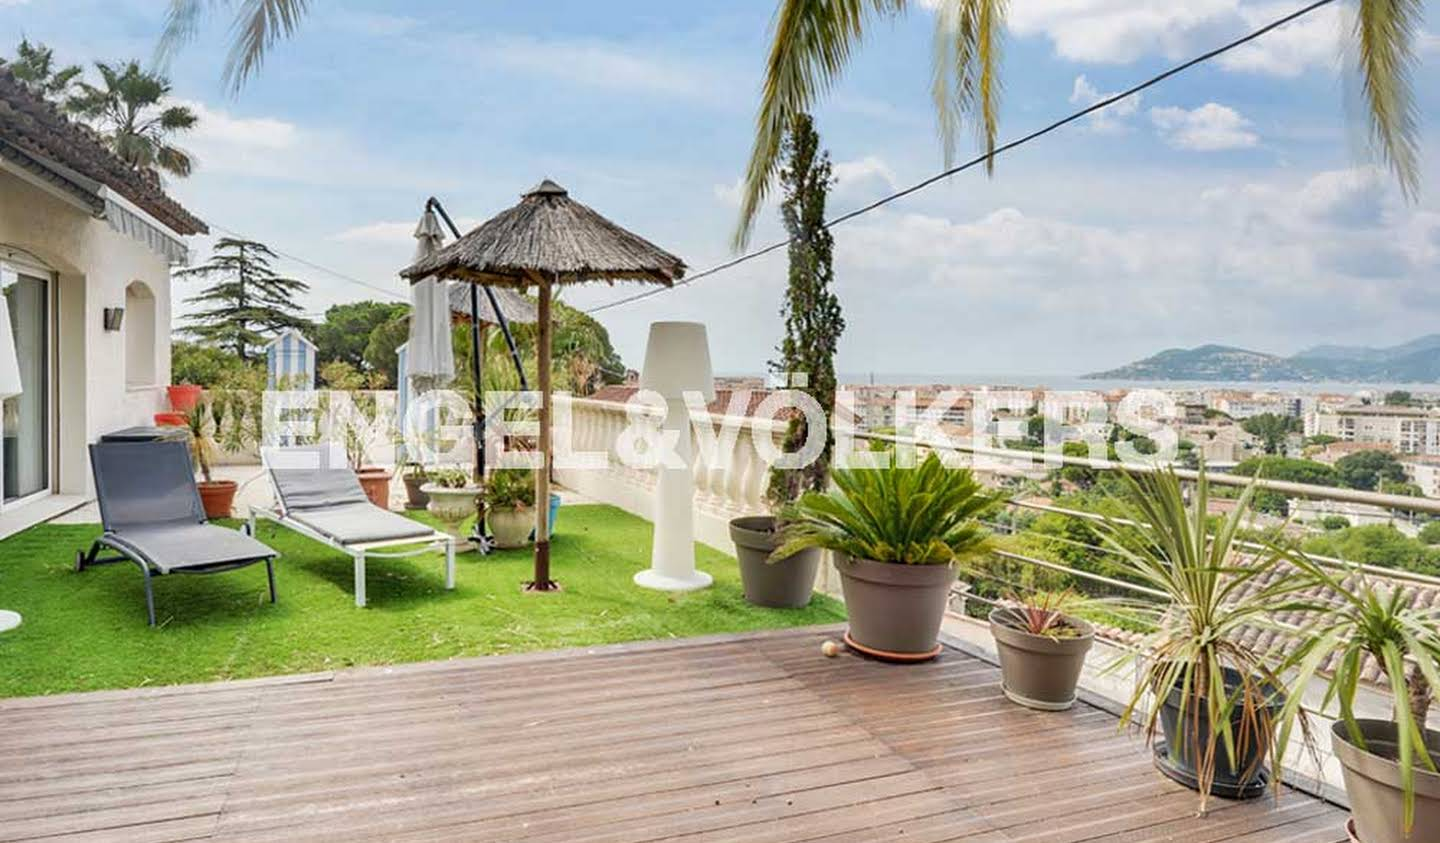 House with pool and terrace Cannes la bocca